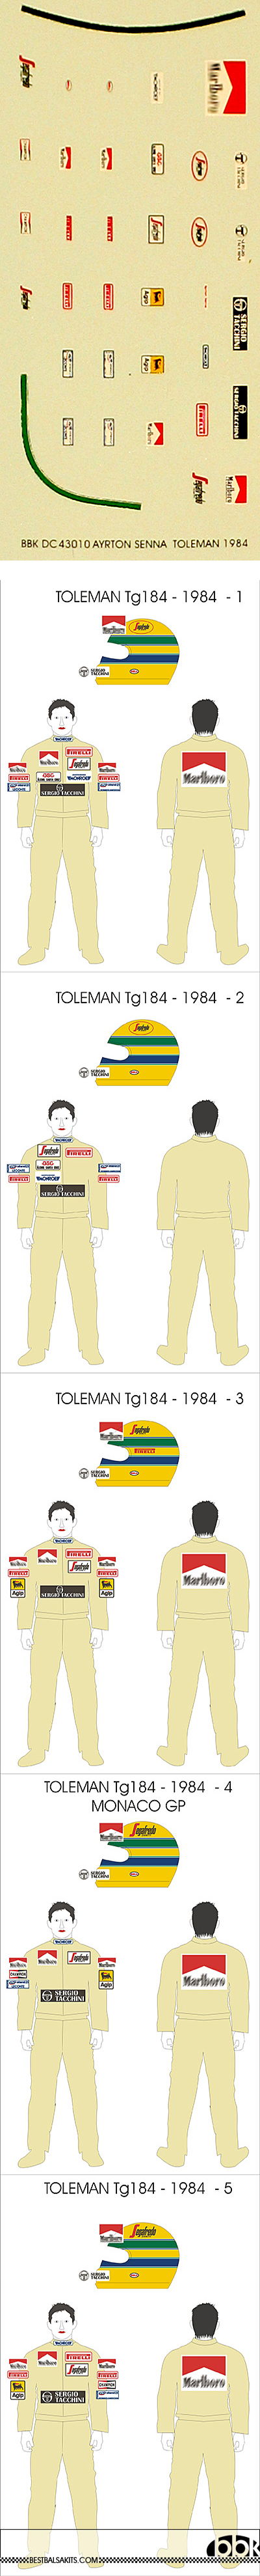 BBK 1/43 SENNA DECAL TOLEMAN 1984